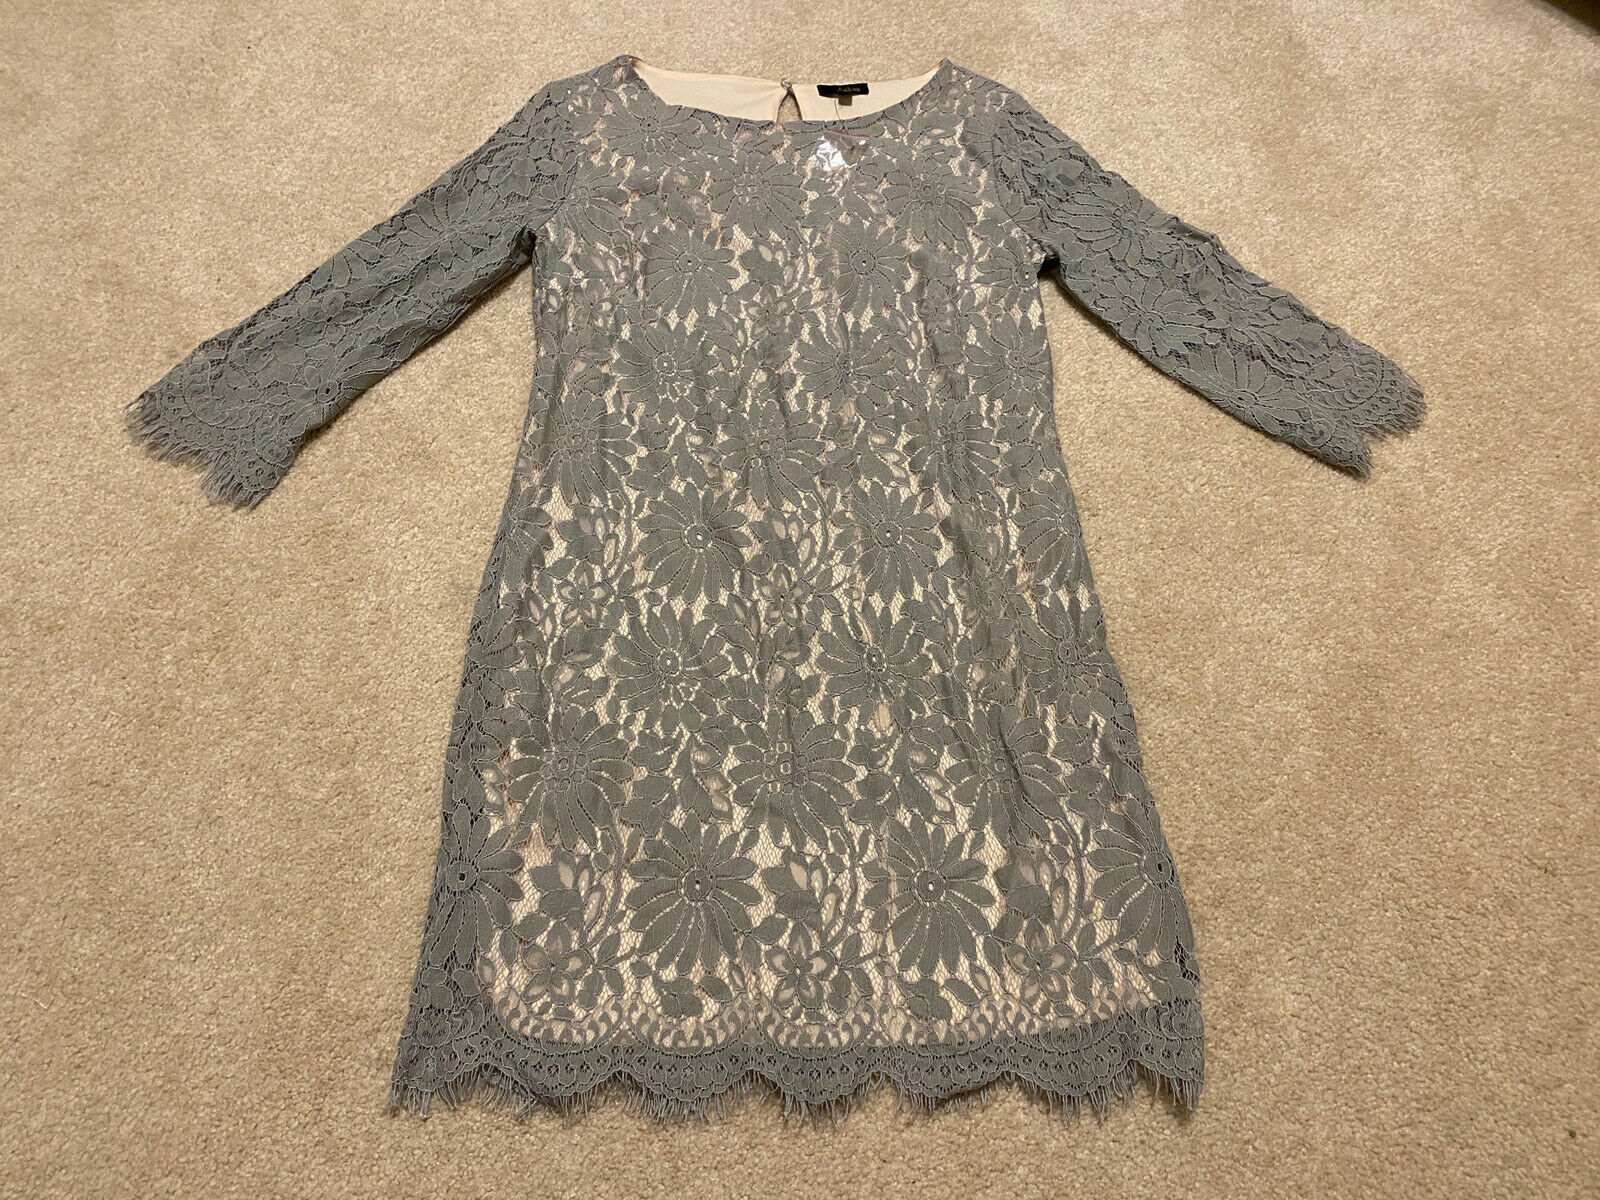 NWOT Aakaa Women's Gray taupe Dress - Lace Overlay - Formal small